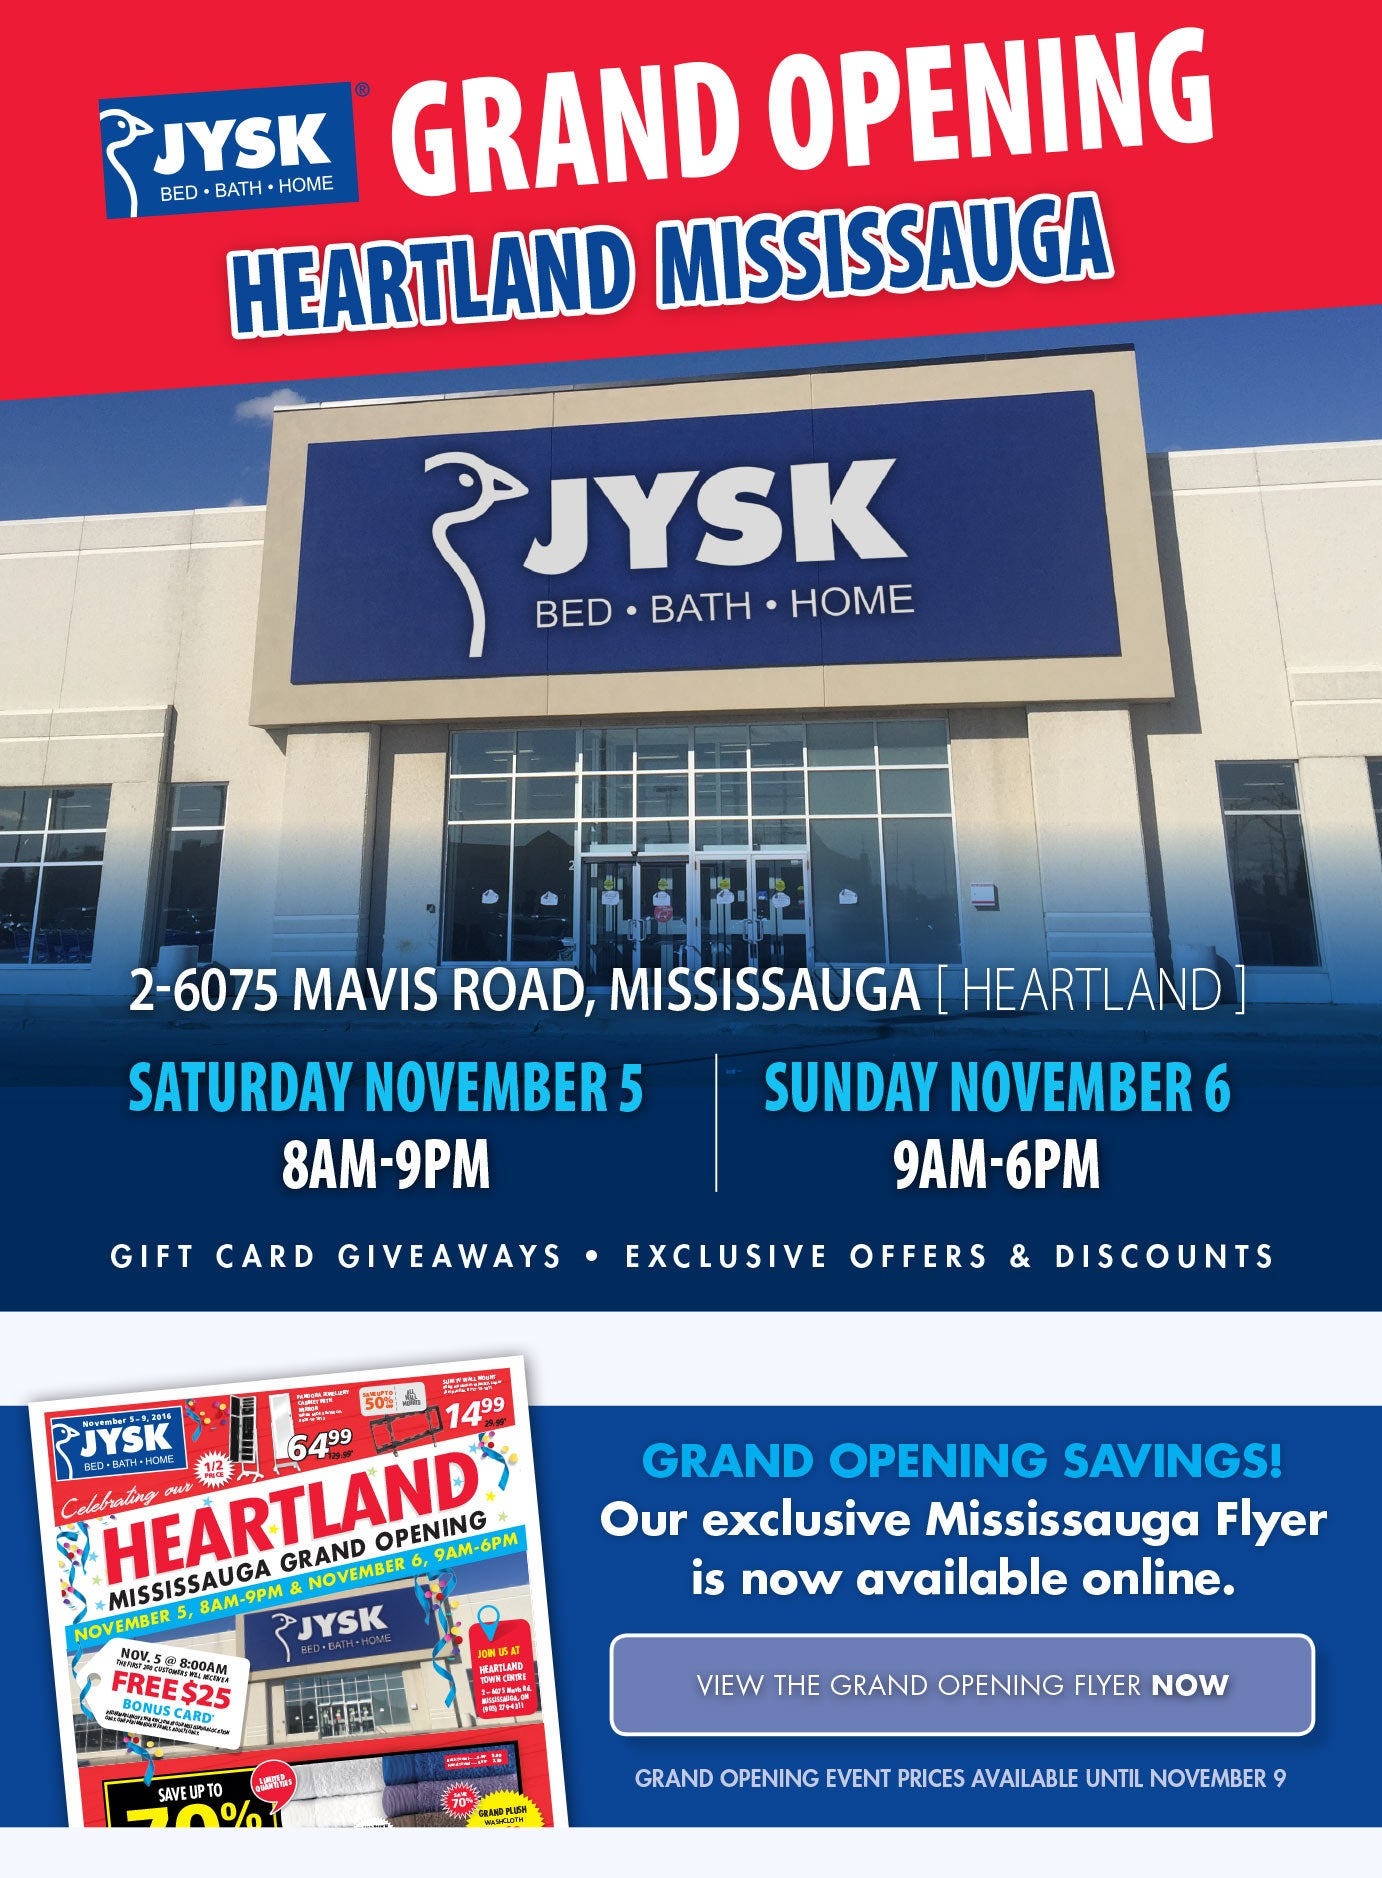 Heartland Mississauga Grand Opening Event!